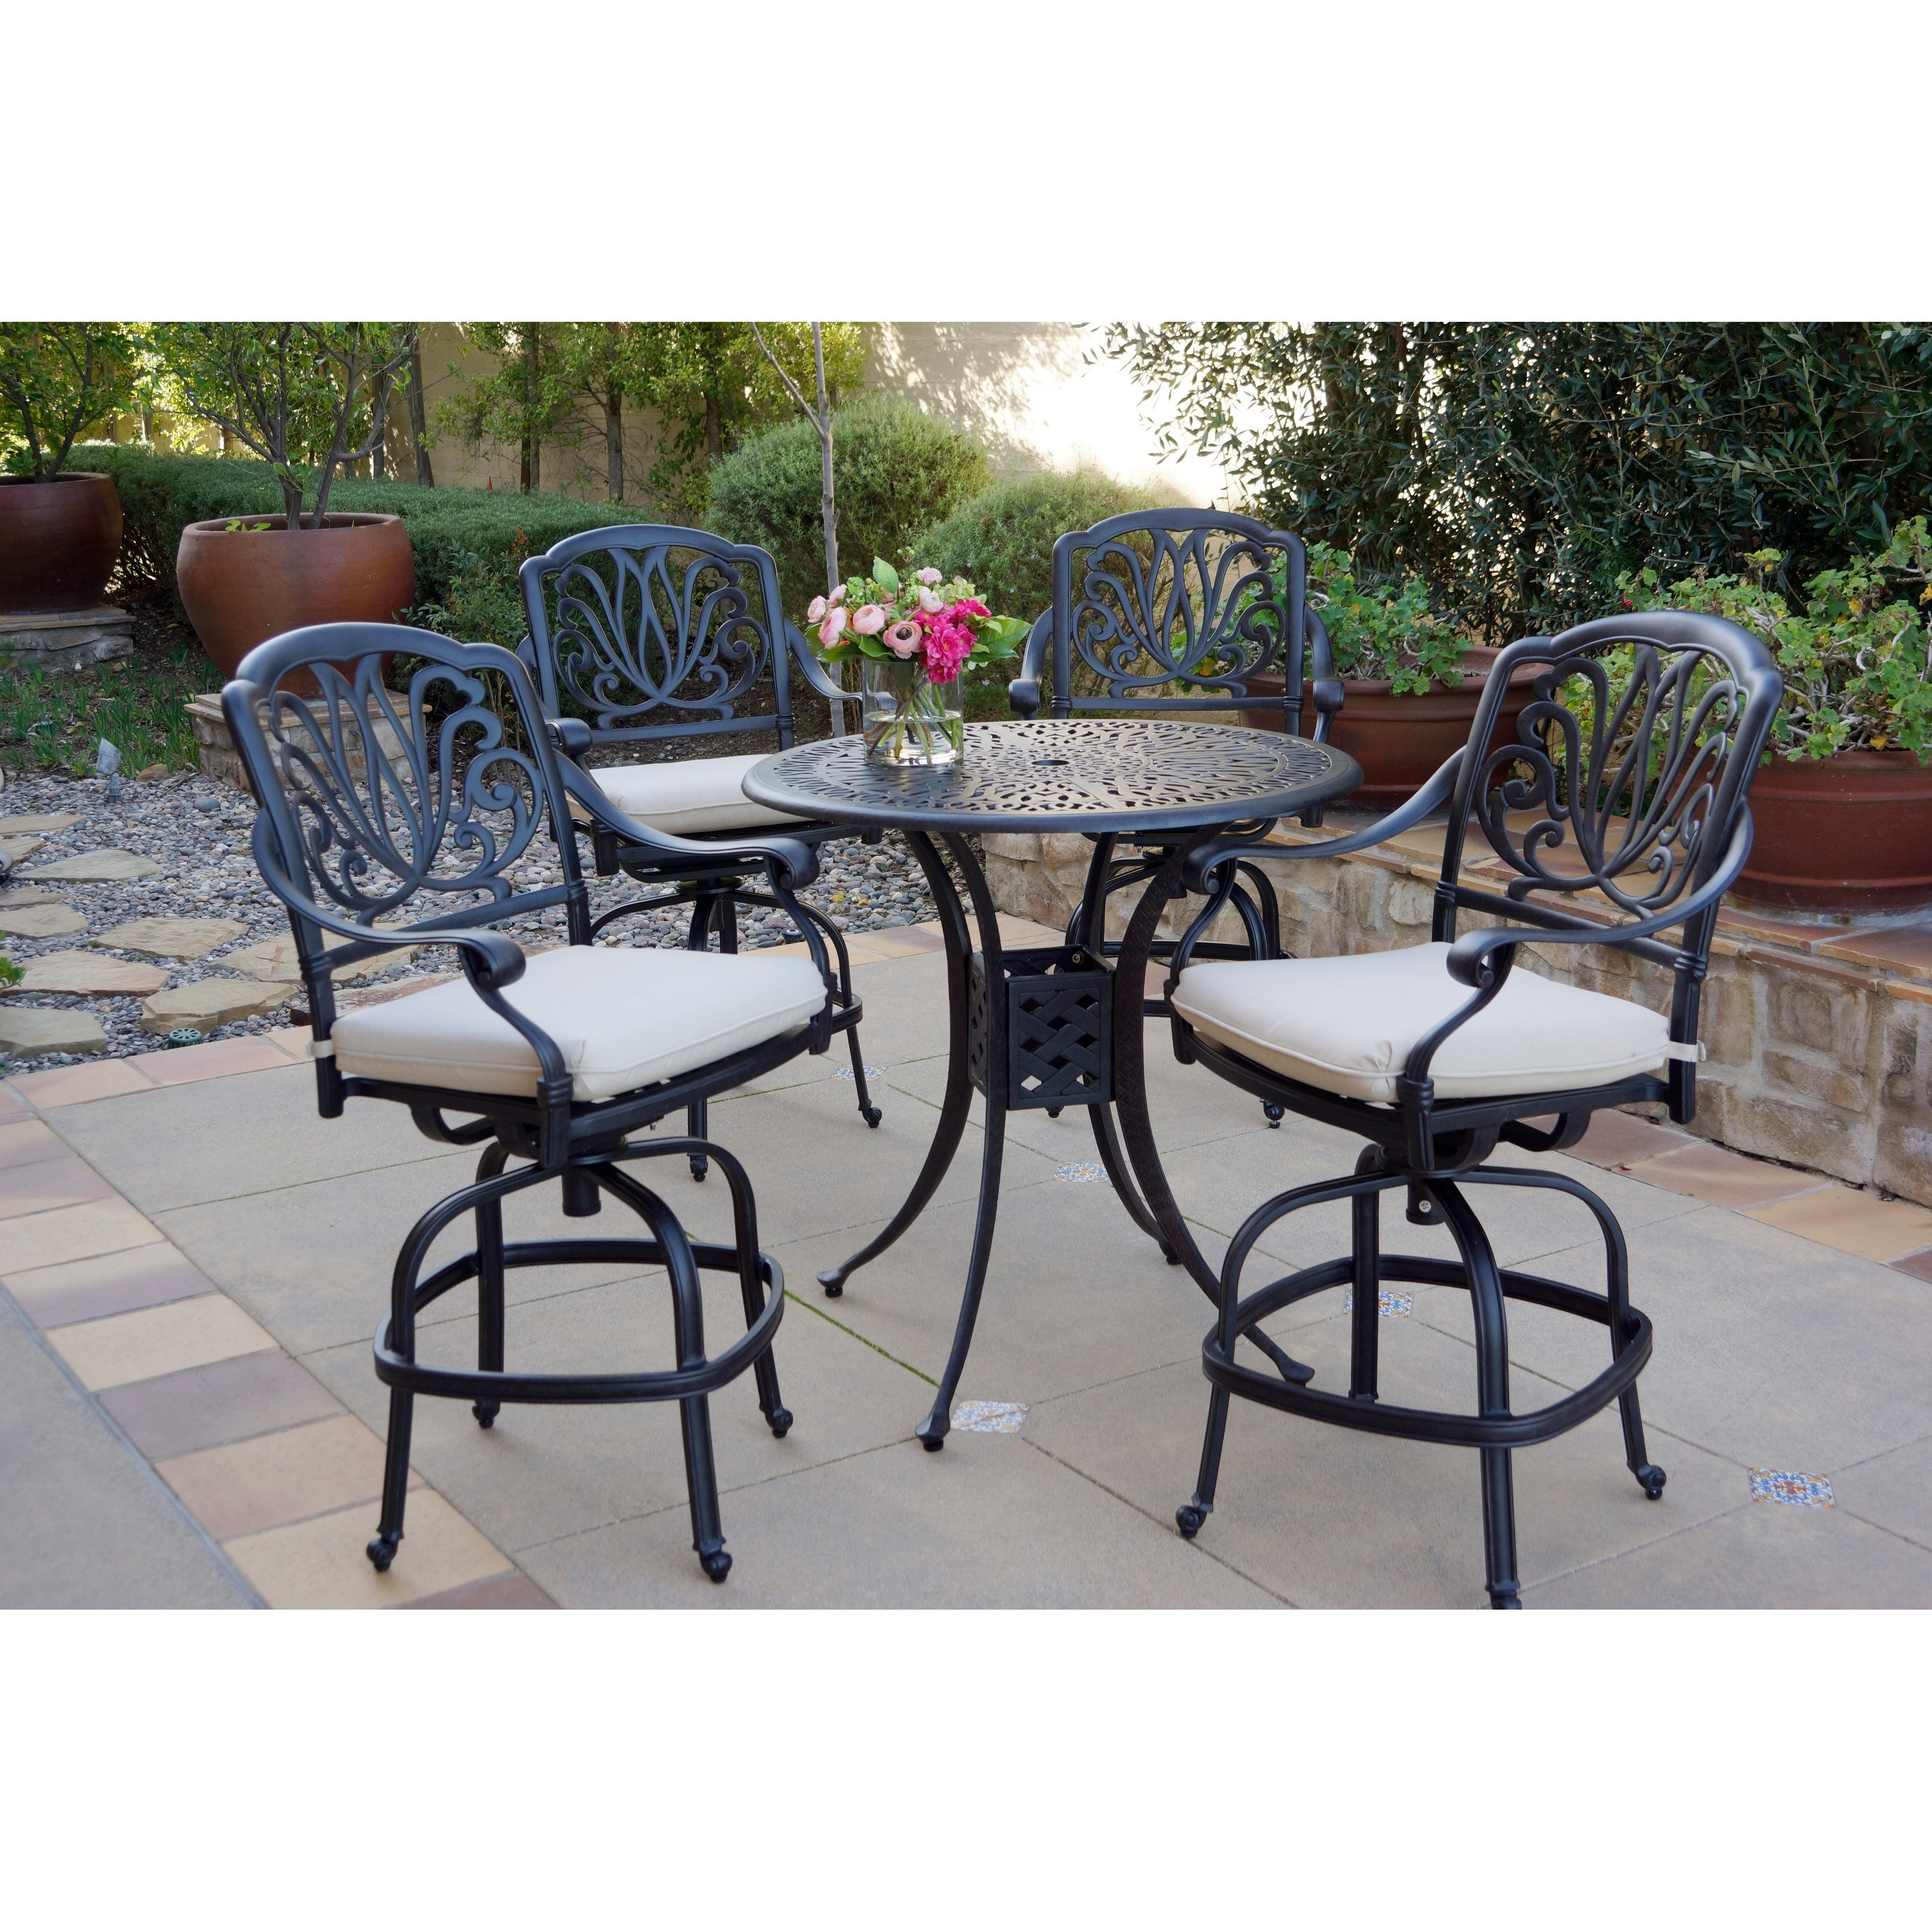 Picture of: 5 Piece Patio Bar Set 36 Inch Round Counter Height Bar Table Overstock 27326480